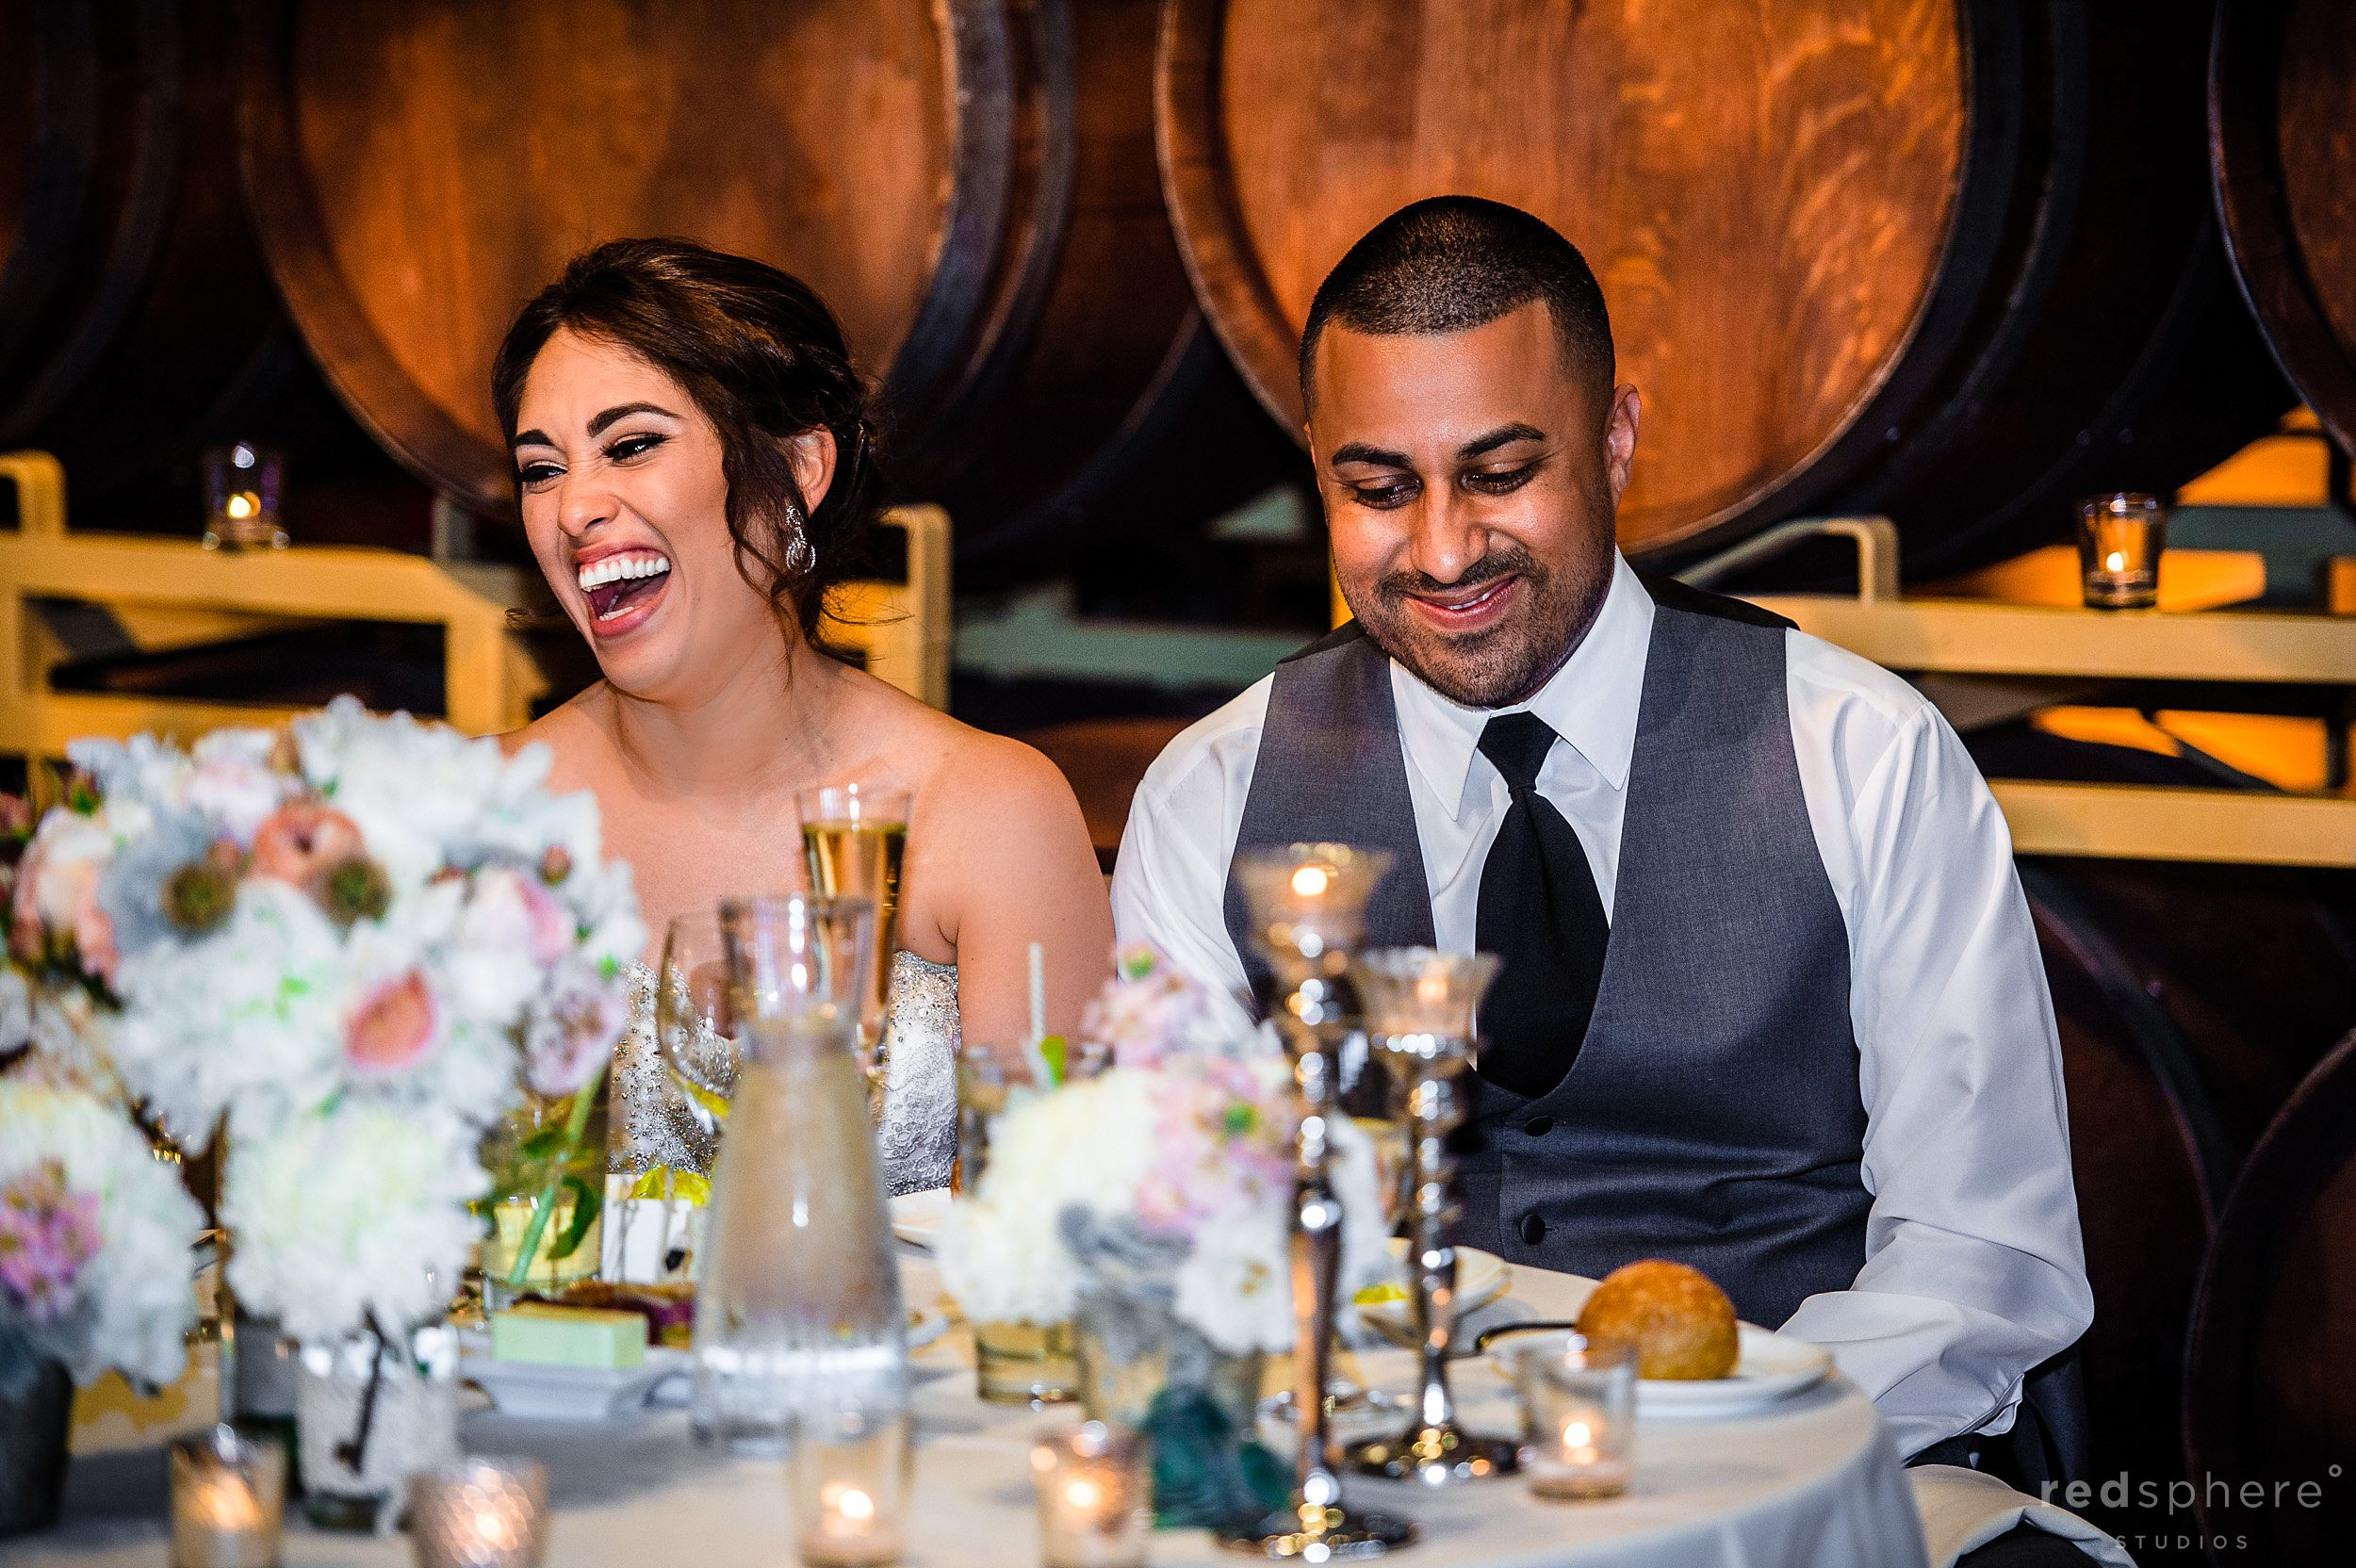 Newly Wed Bride and Groom Laughing at Reception Table